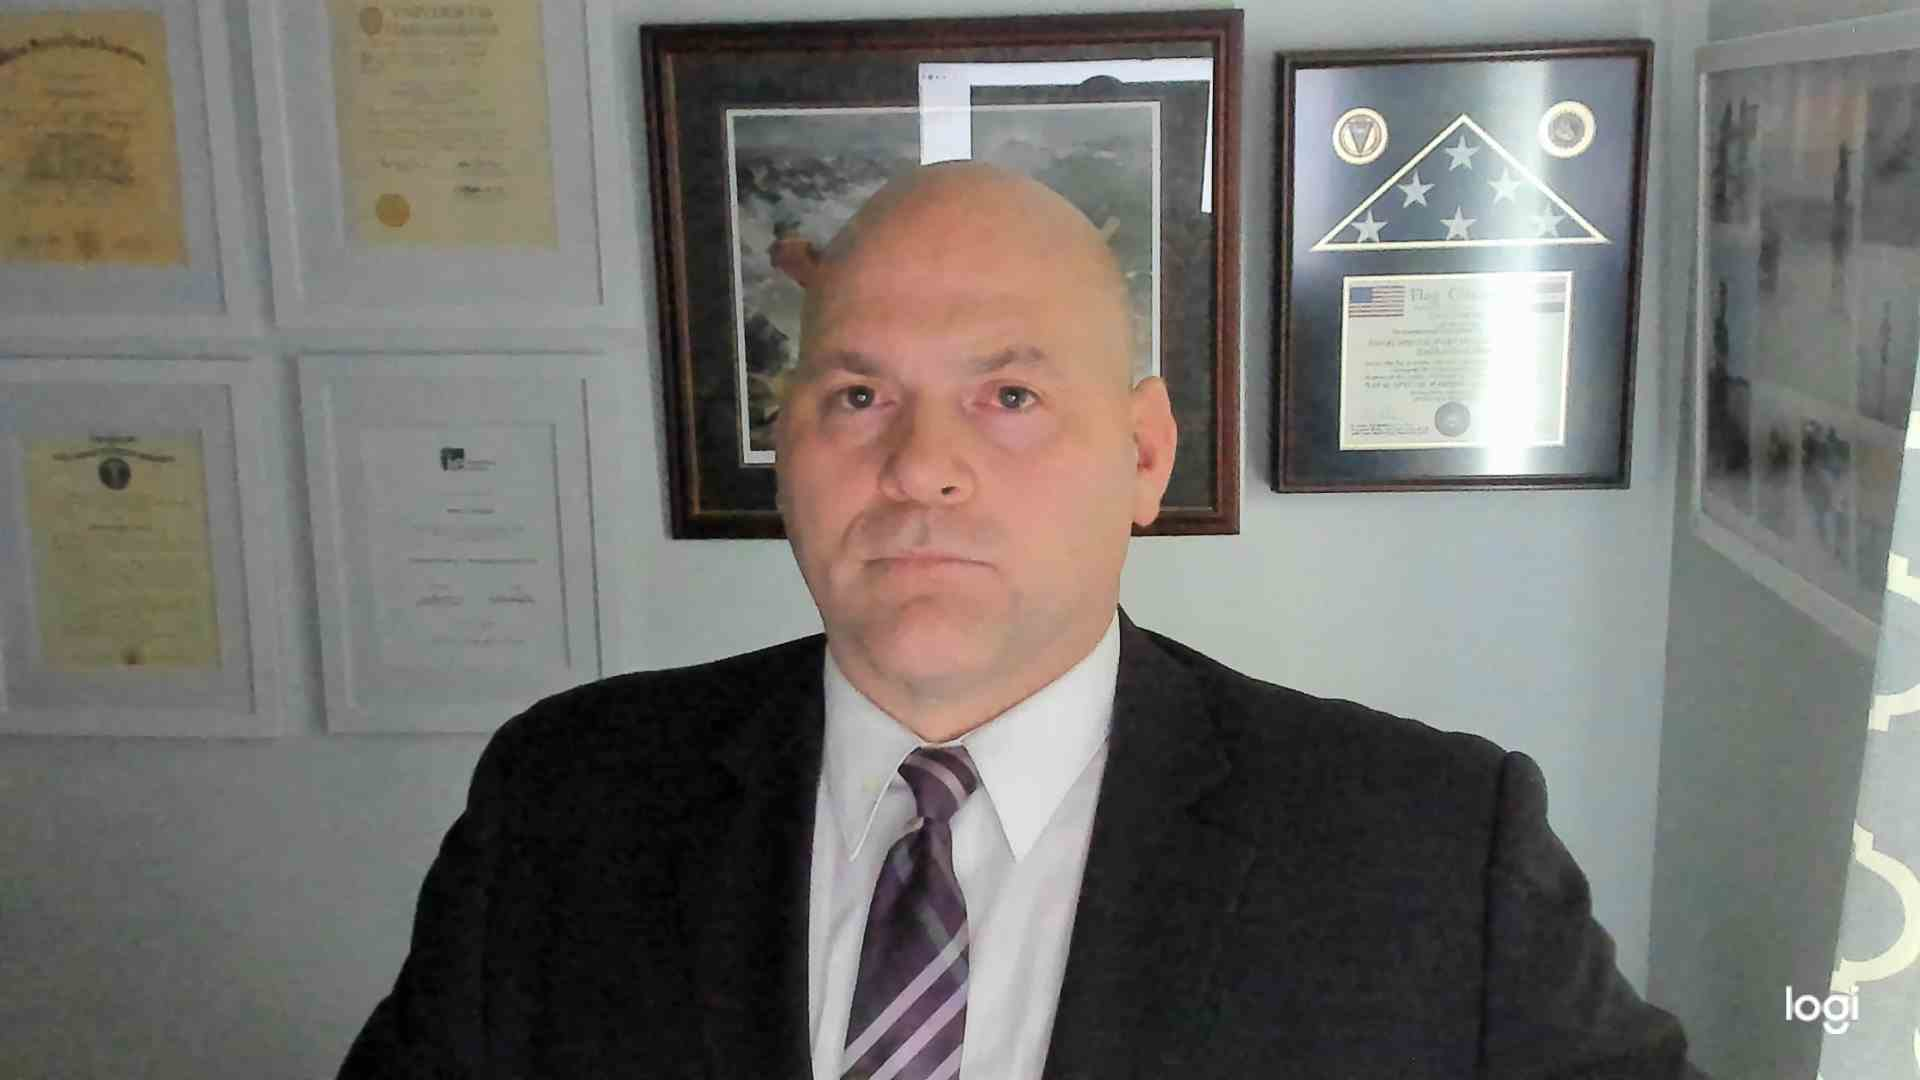 MARK LAMPMAN Your Financial Professional & Insurance Agent